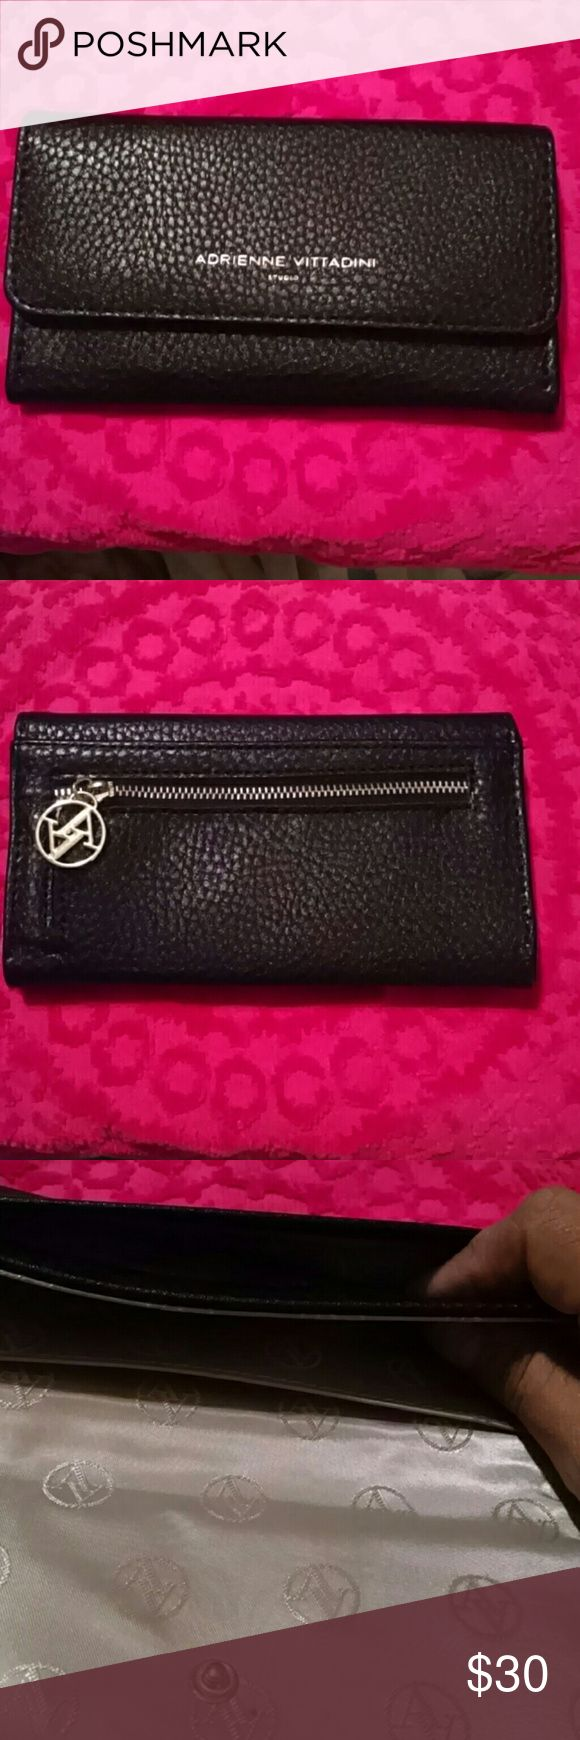 Adrienne Vittadini skinny wallet black Gently used once, just to skinney for my use. In good condition and also has a coin change zipper on the back side.  Great for on the go with little to carry.  Like for date, girls night out. Adrienne Vittadini Bags Wallets